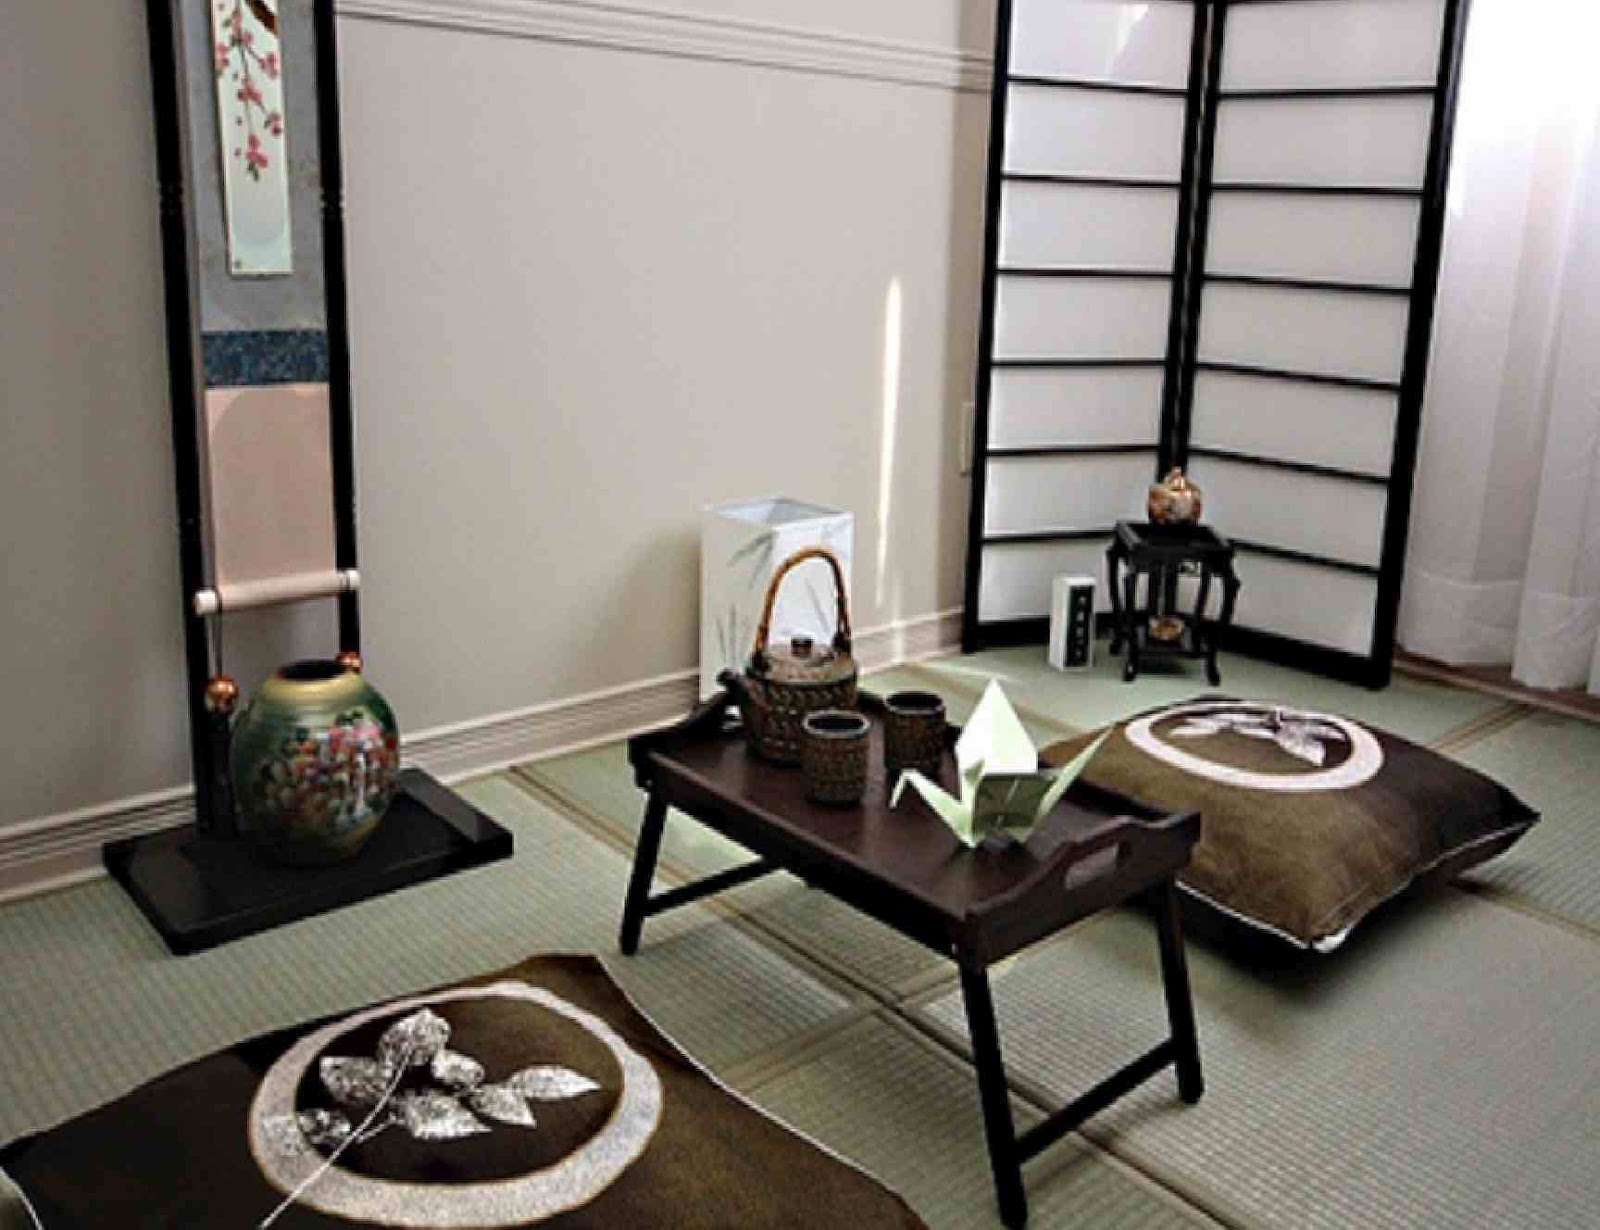 Japanese interior design interior home design - Home decorating japanese ...